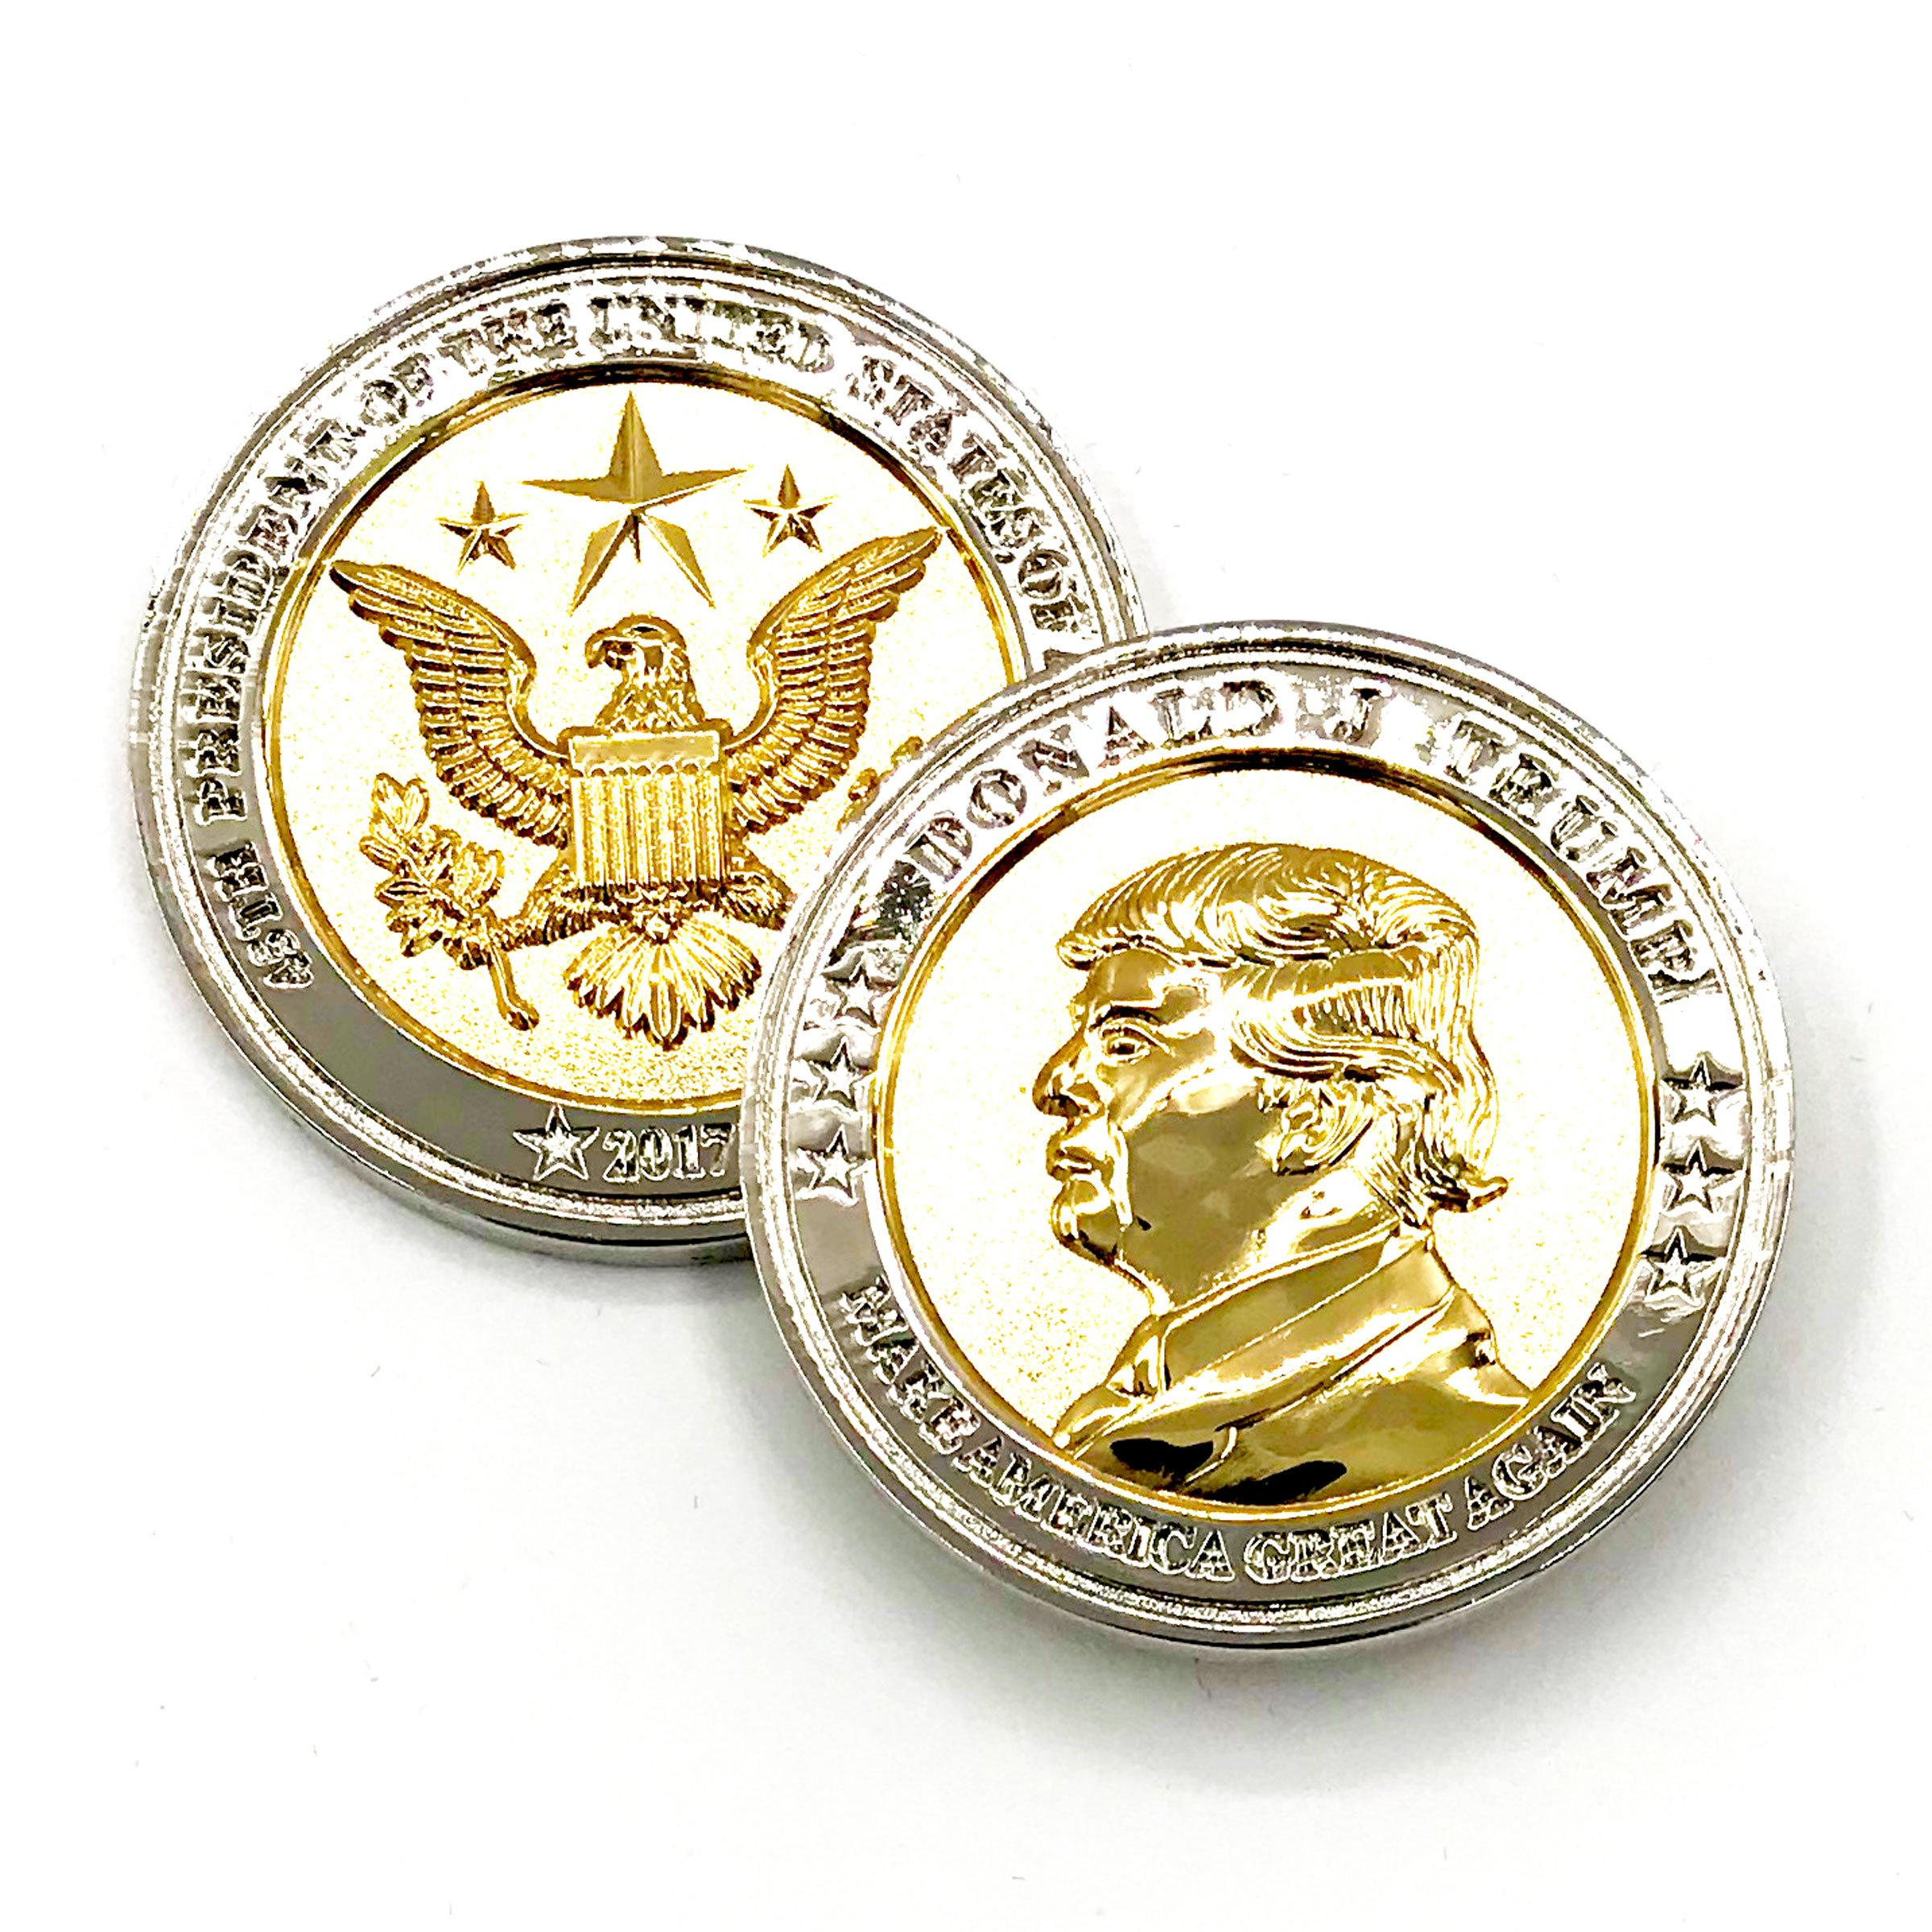 Trump Coin, 58th Presidential Inauguration of Donald J. Trump Challenge Coin by AIIZ Collectibles, 1.75'' Diameter in Shinny 24K Gold & 925 Silver Plating, packaged in Black Velvet Case by AIIZ Collectibles (Image #2)